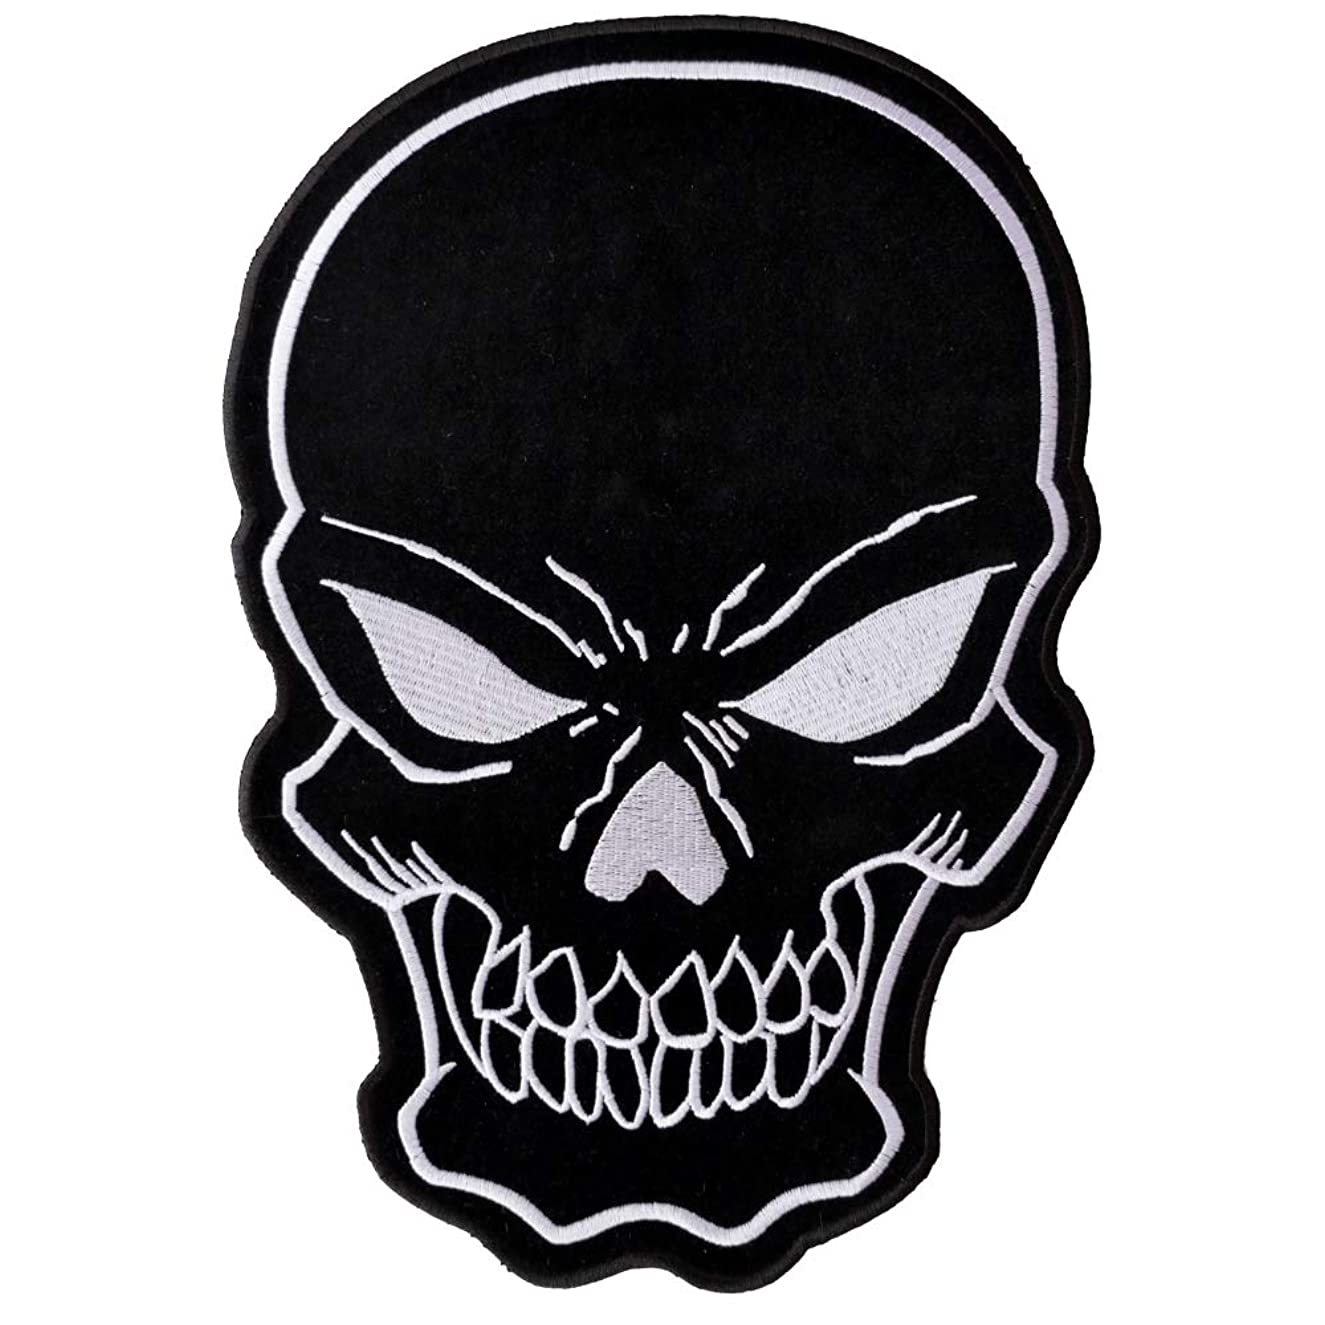 Black Skull Large Back Patch - 8x11 inch. Embroidered Iron on Patch